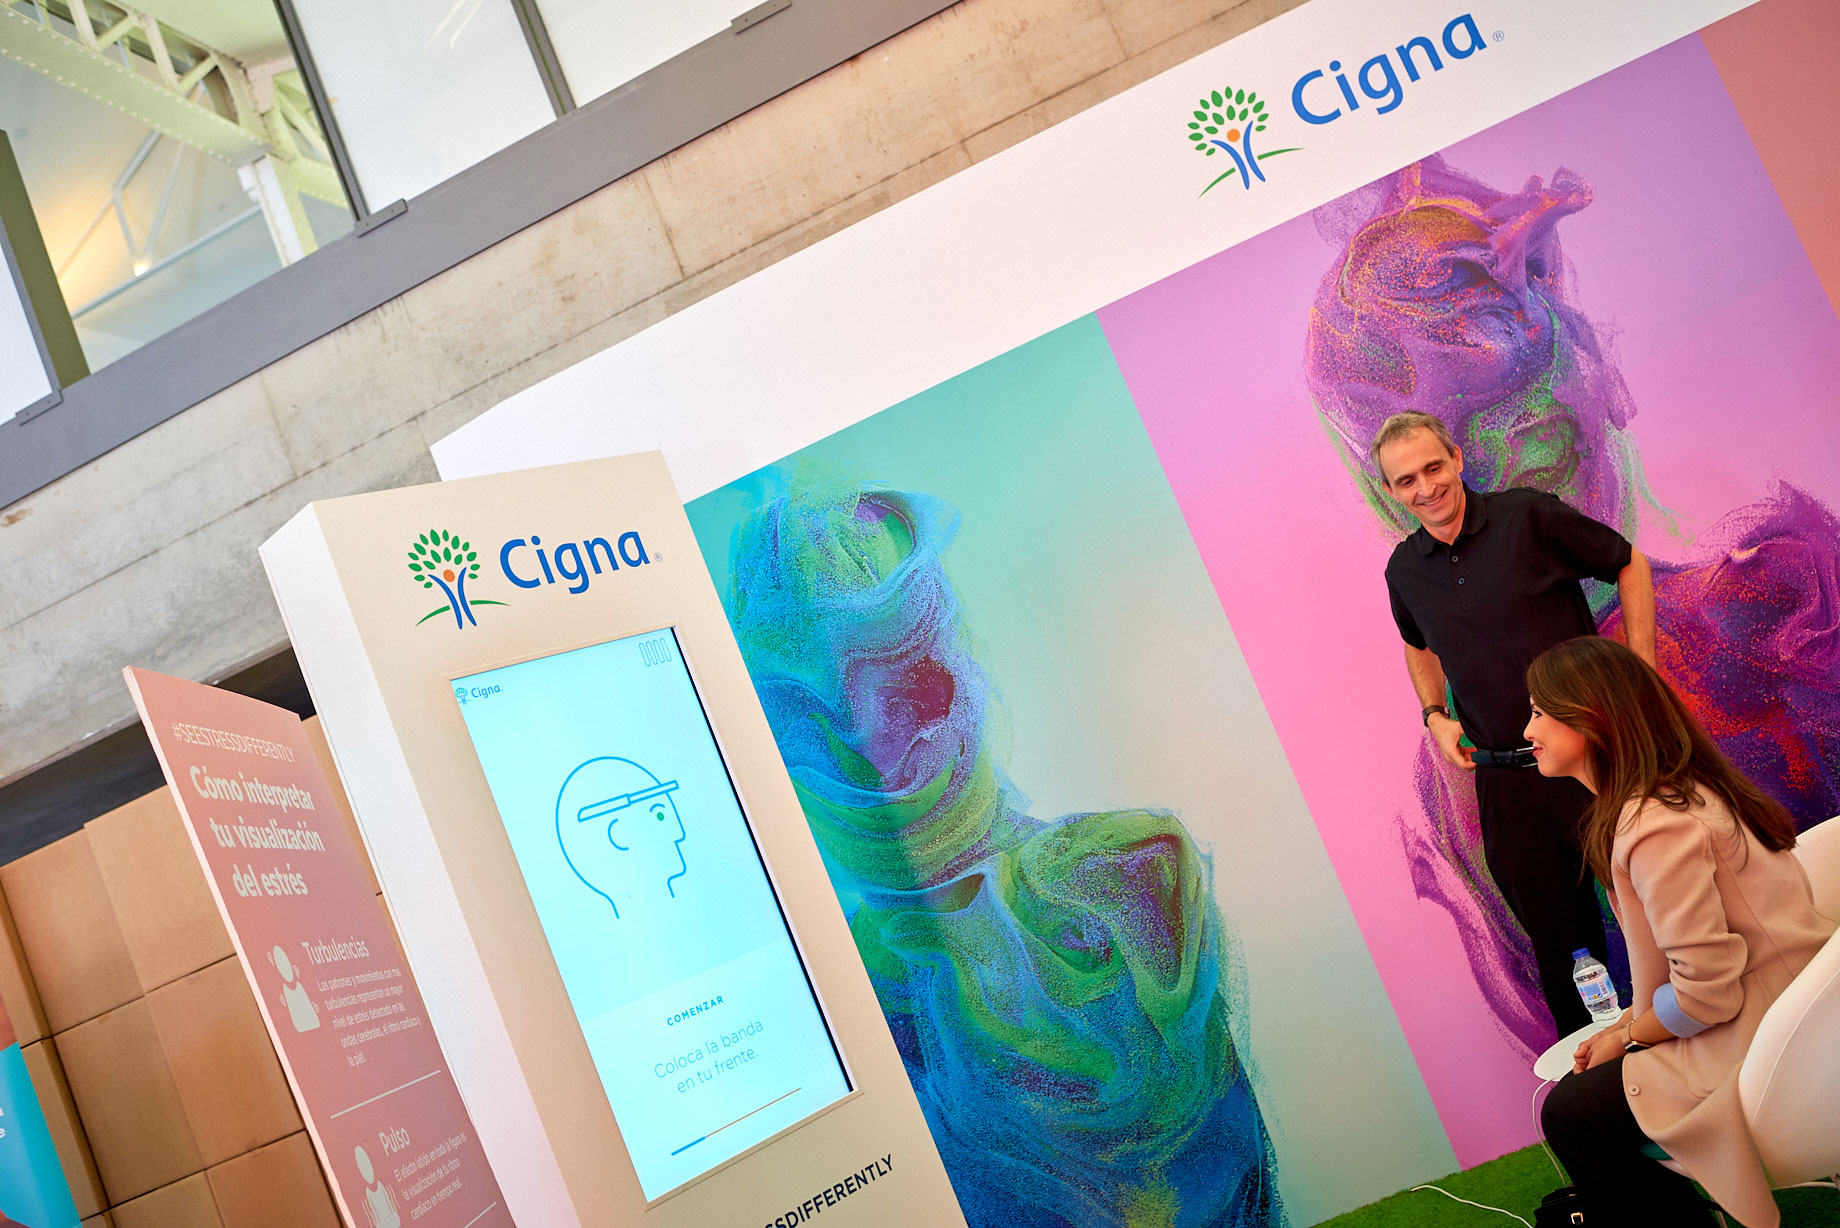 Humans 4 Health by Cigna